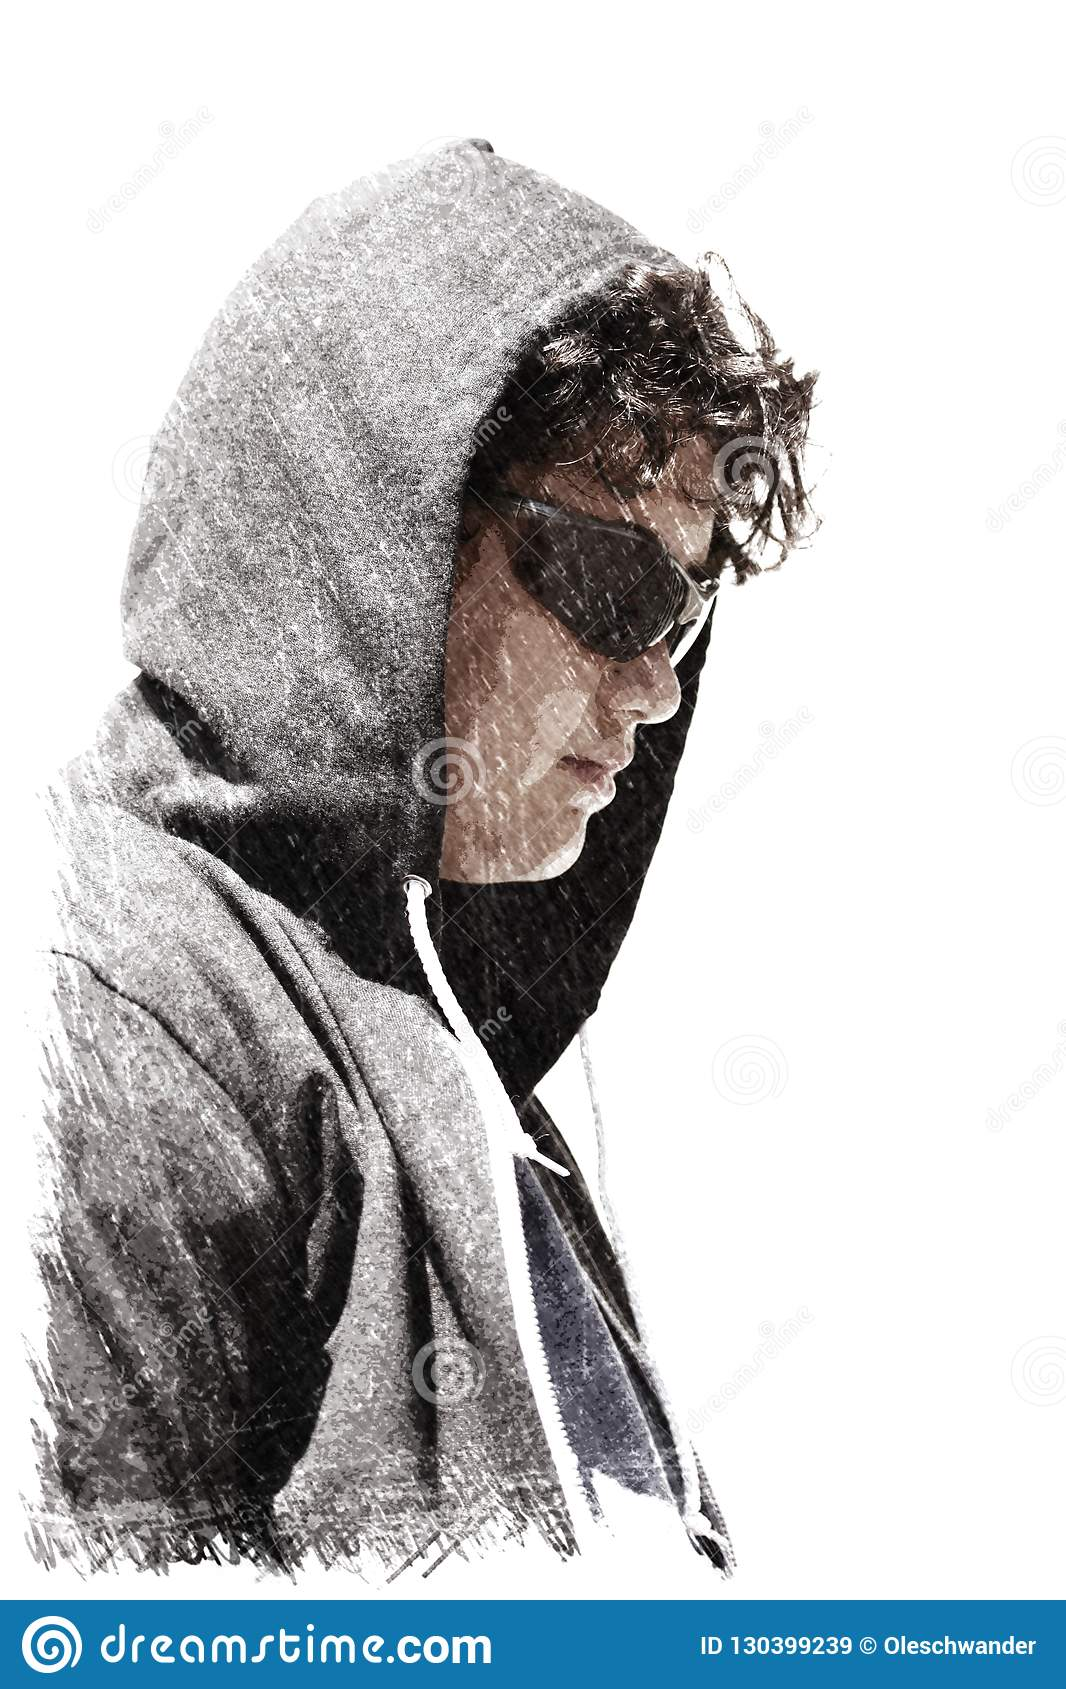 Sad troubled school boy teenager wearing a hoodie - charcoal drawing impression